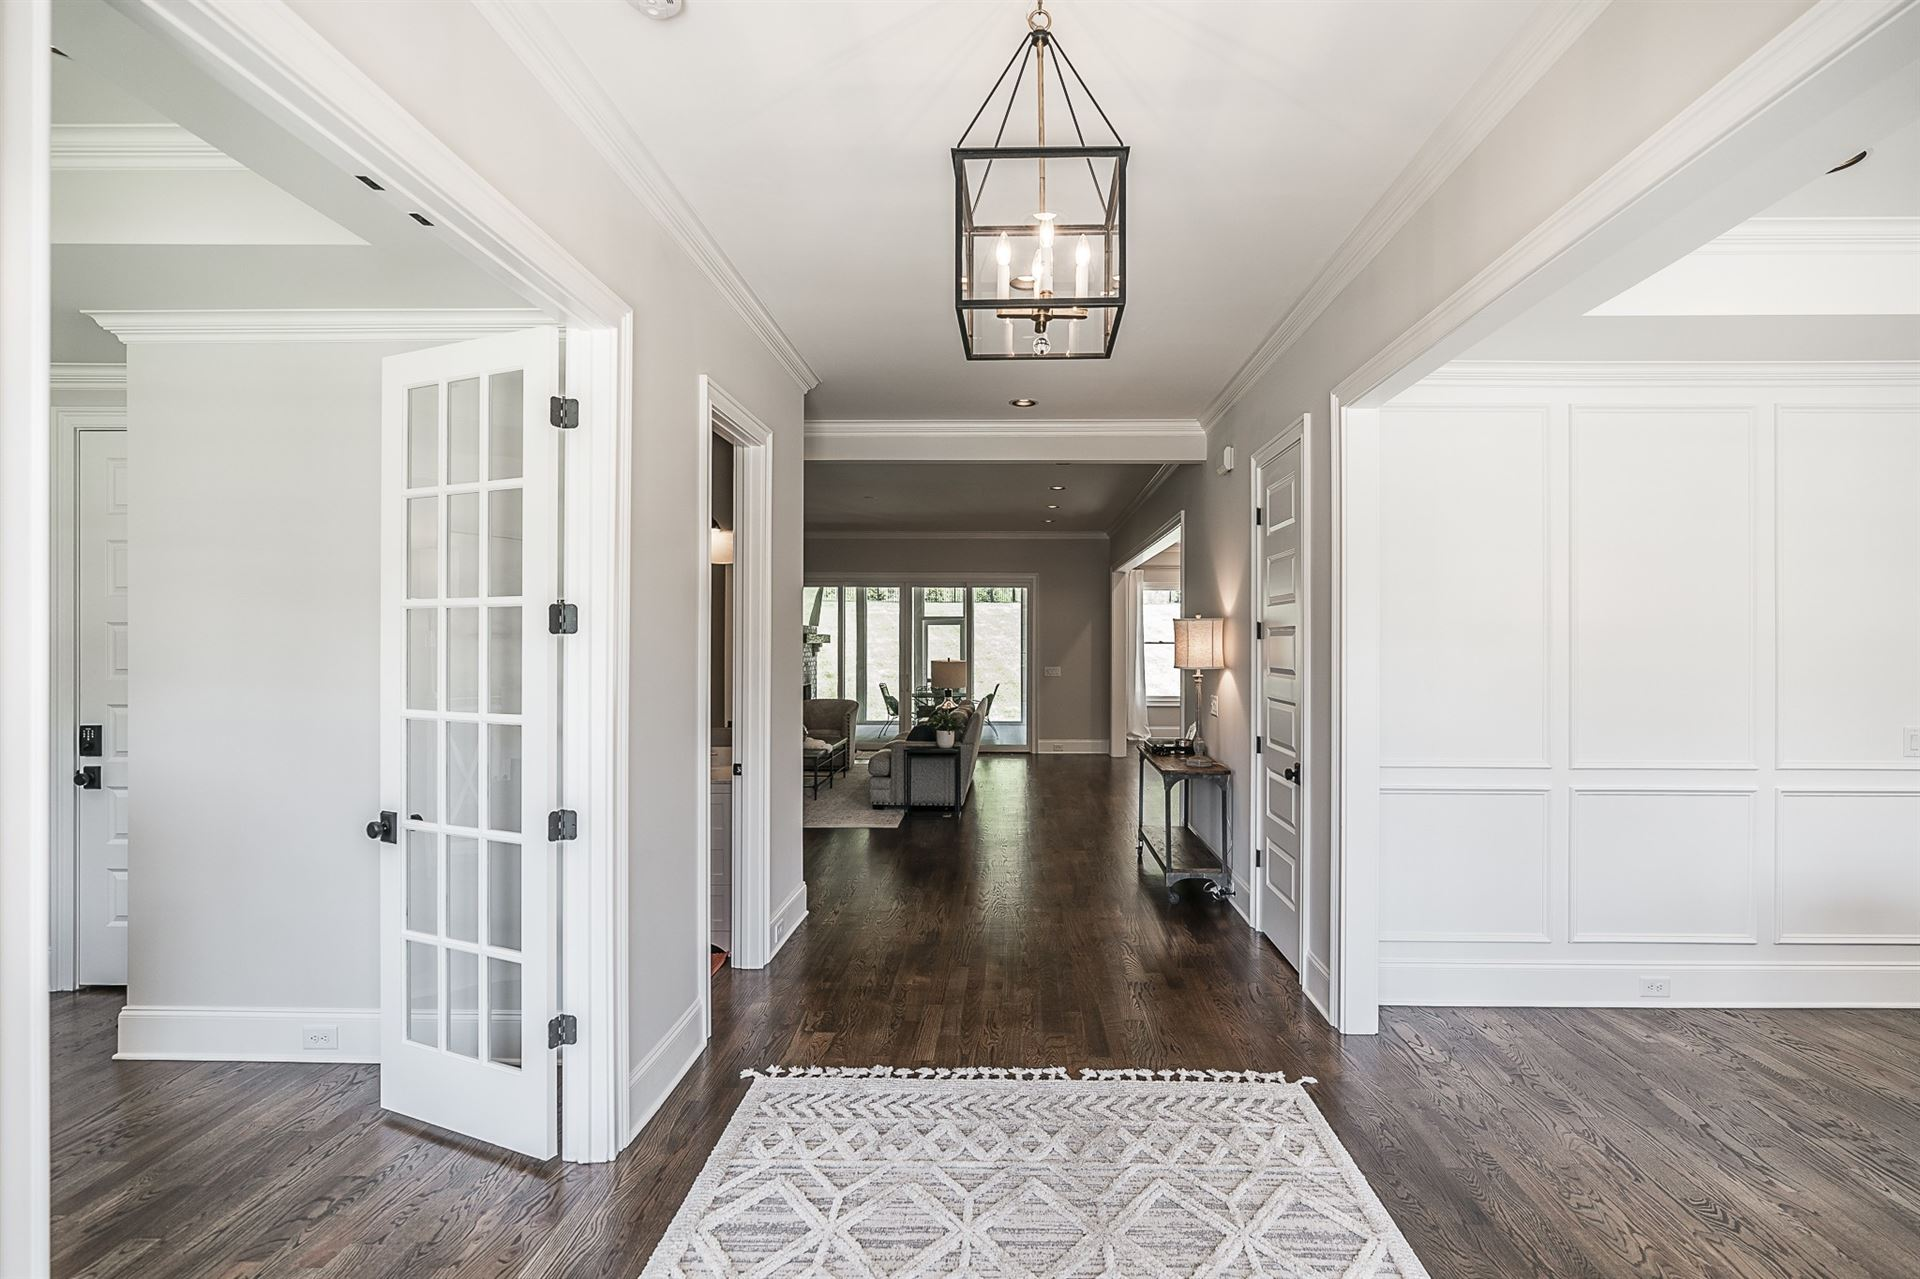 Photo of 1753 Umbria Dr, Brentwood, TN 37027 (MLS # 2262931)